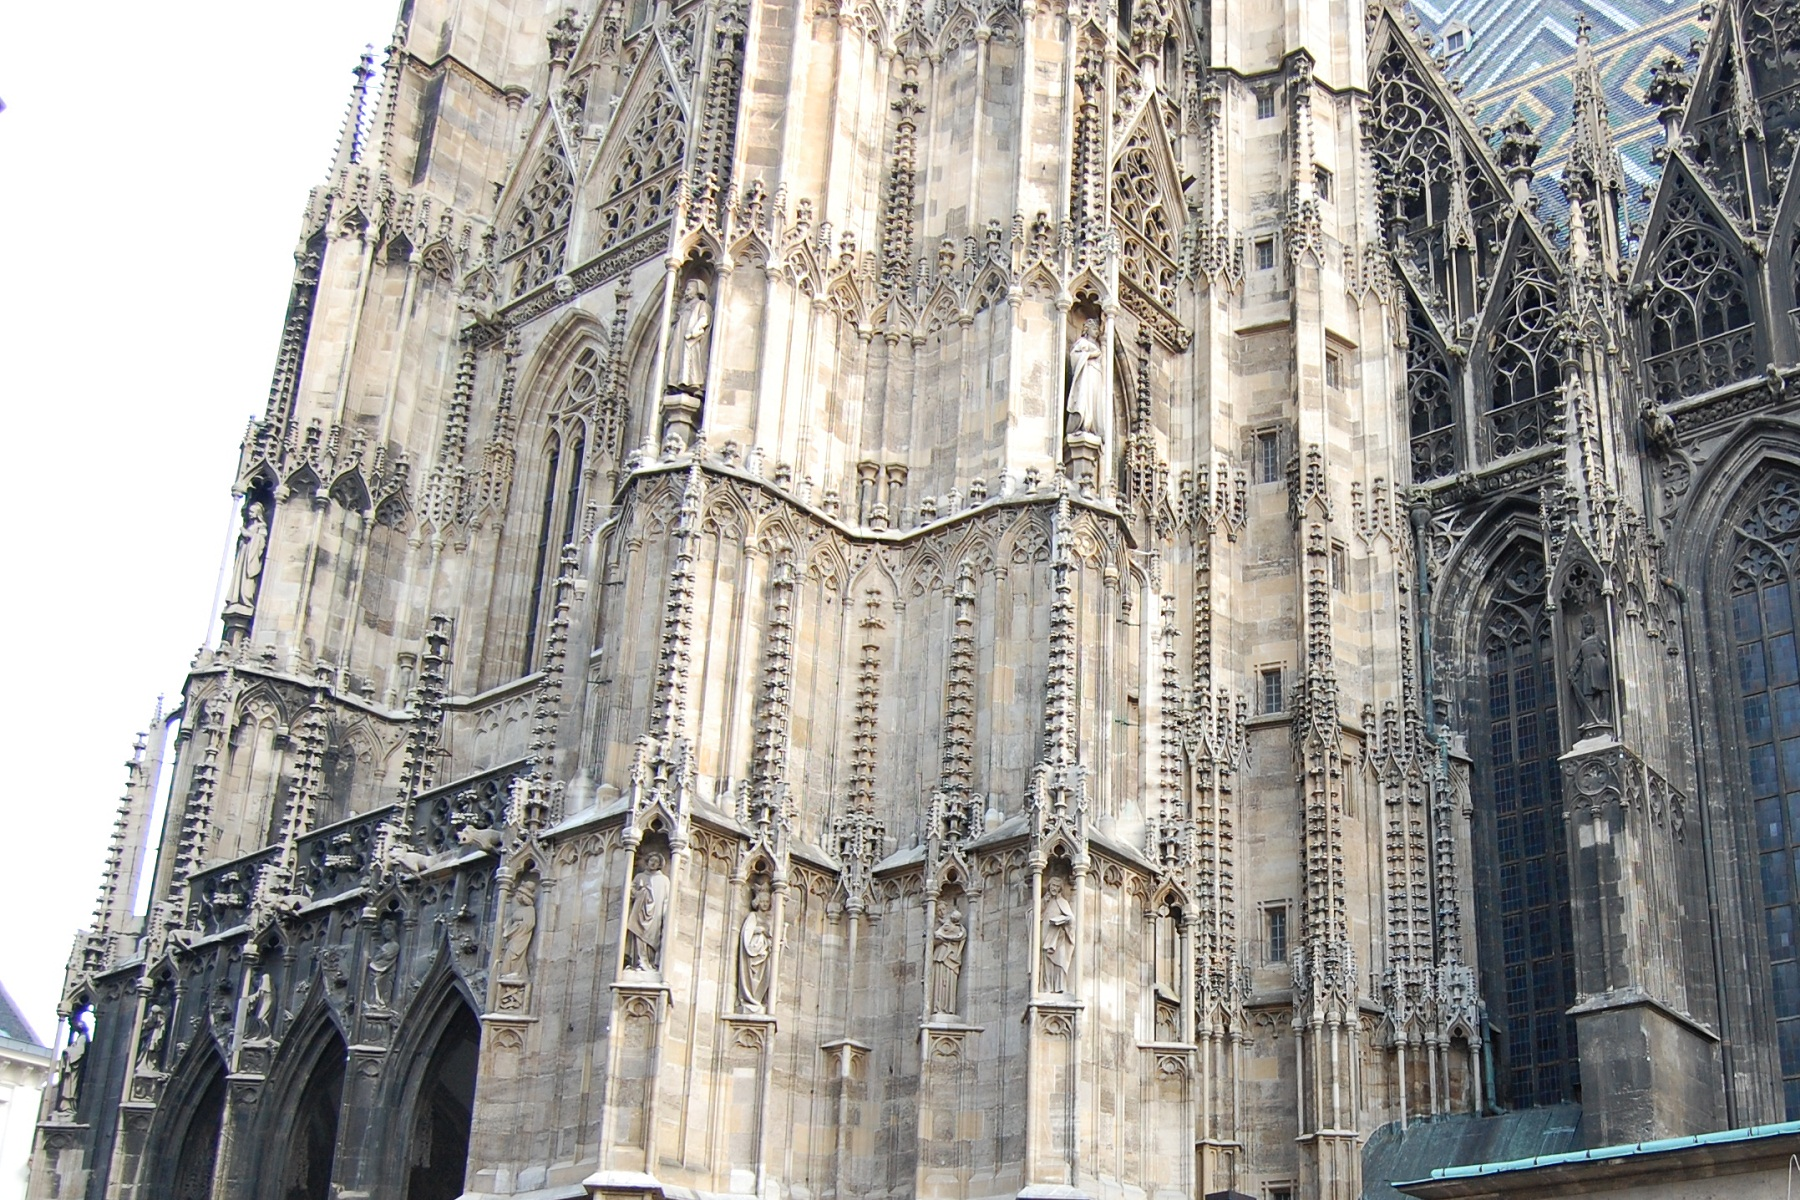 St Stephan Cathedral, Vienna, Austria, Side facade architecture detail